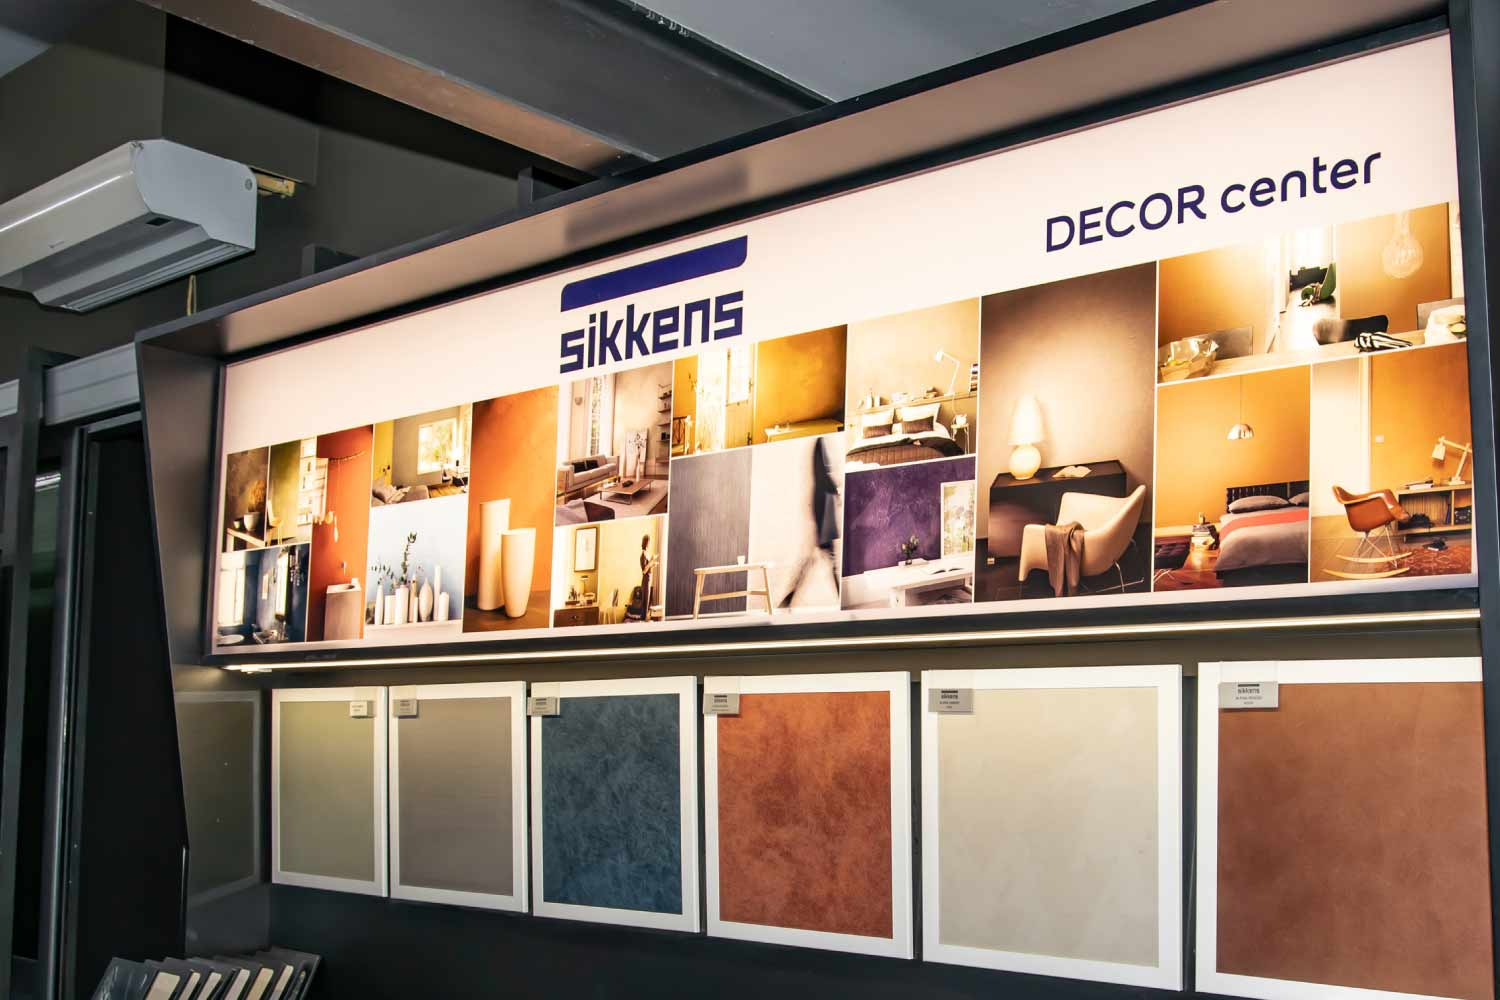 area colore sikkens